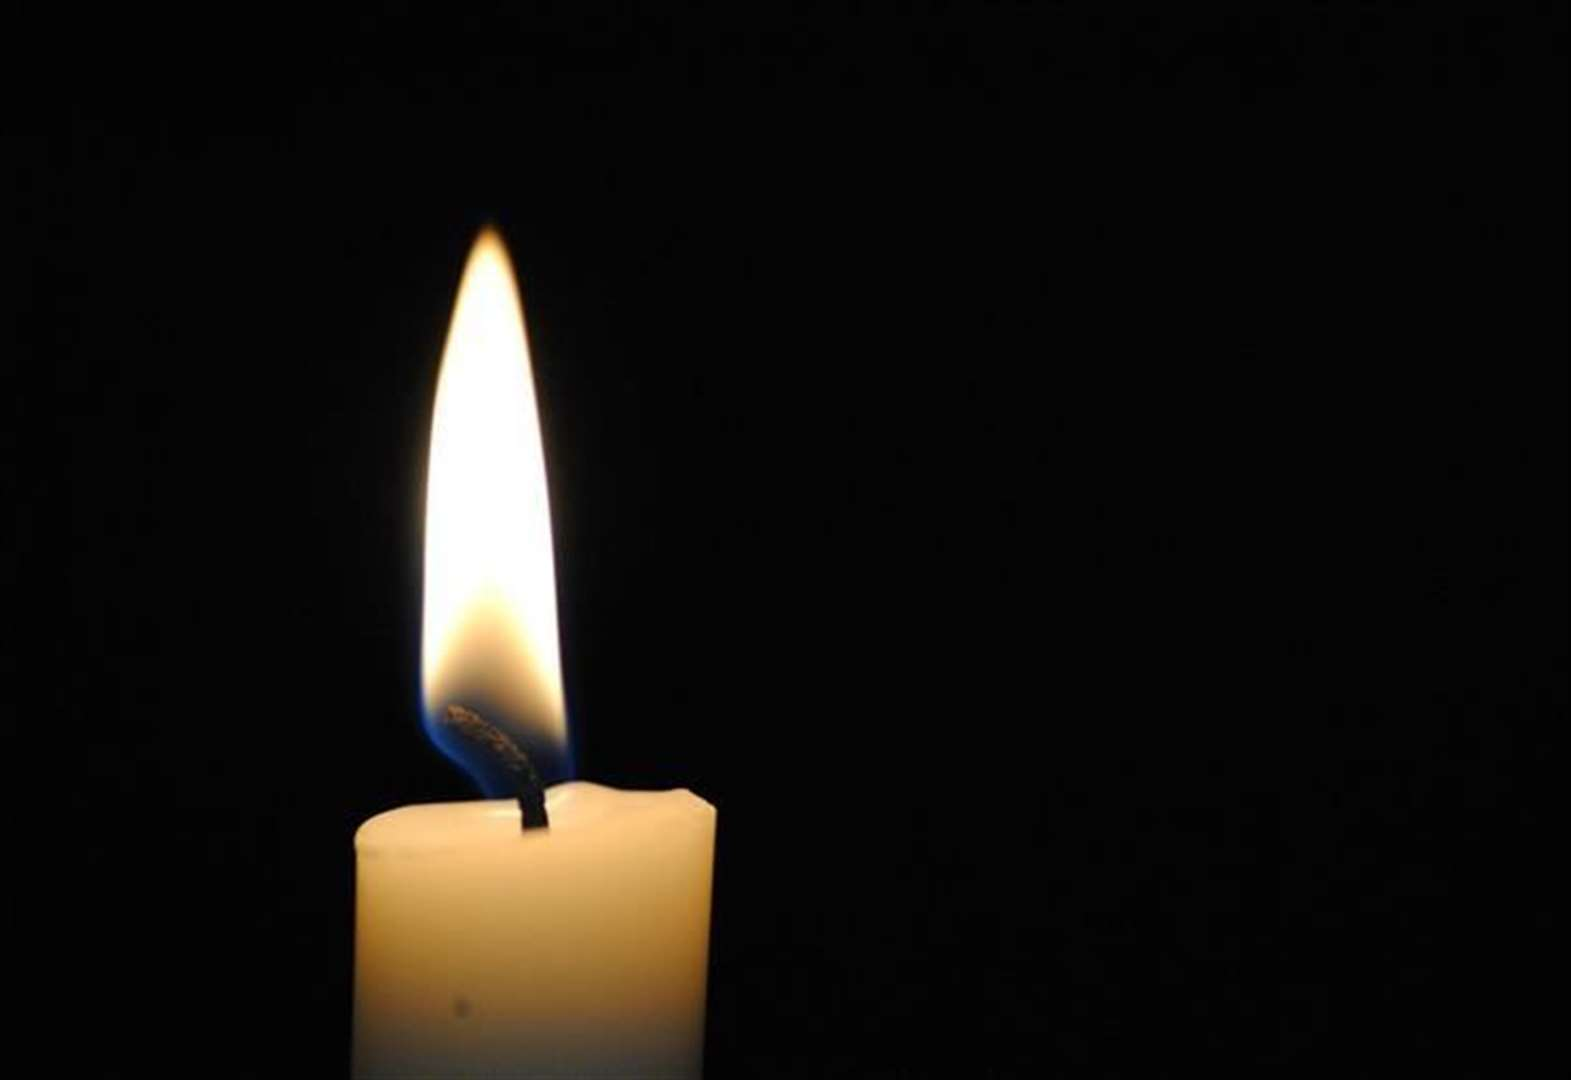 Power cut affected 120 homes